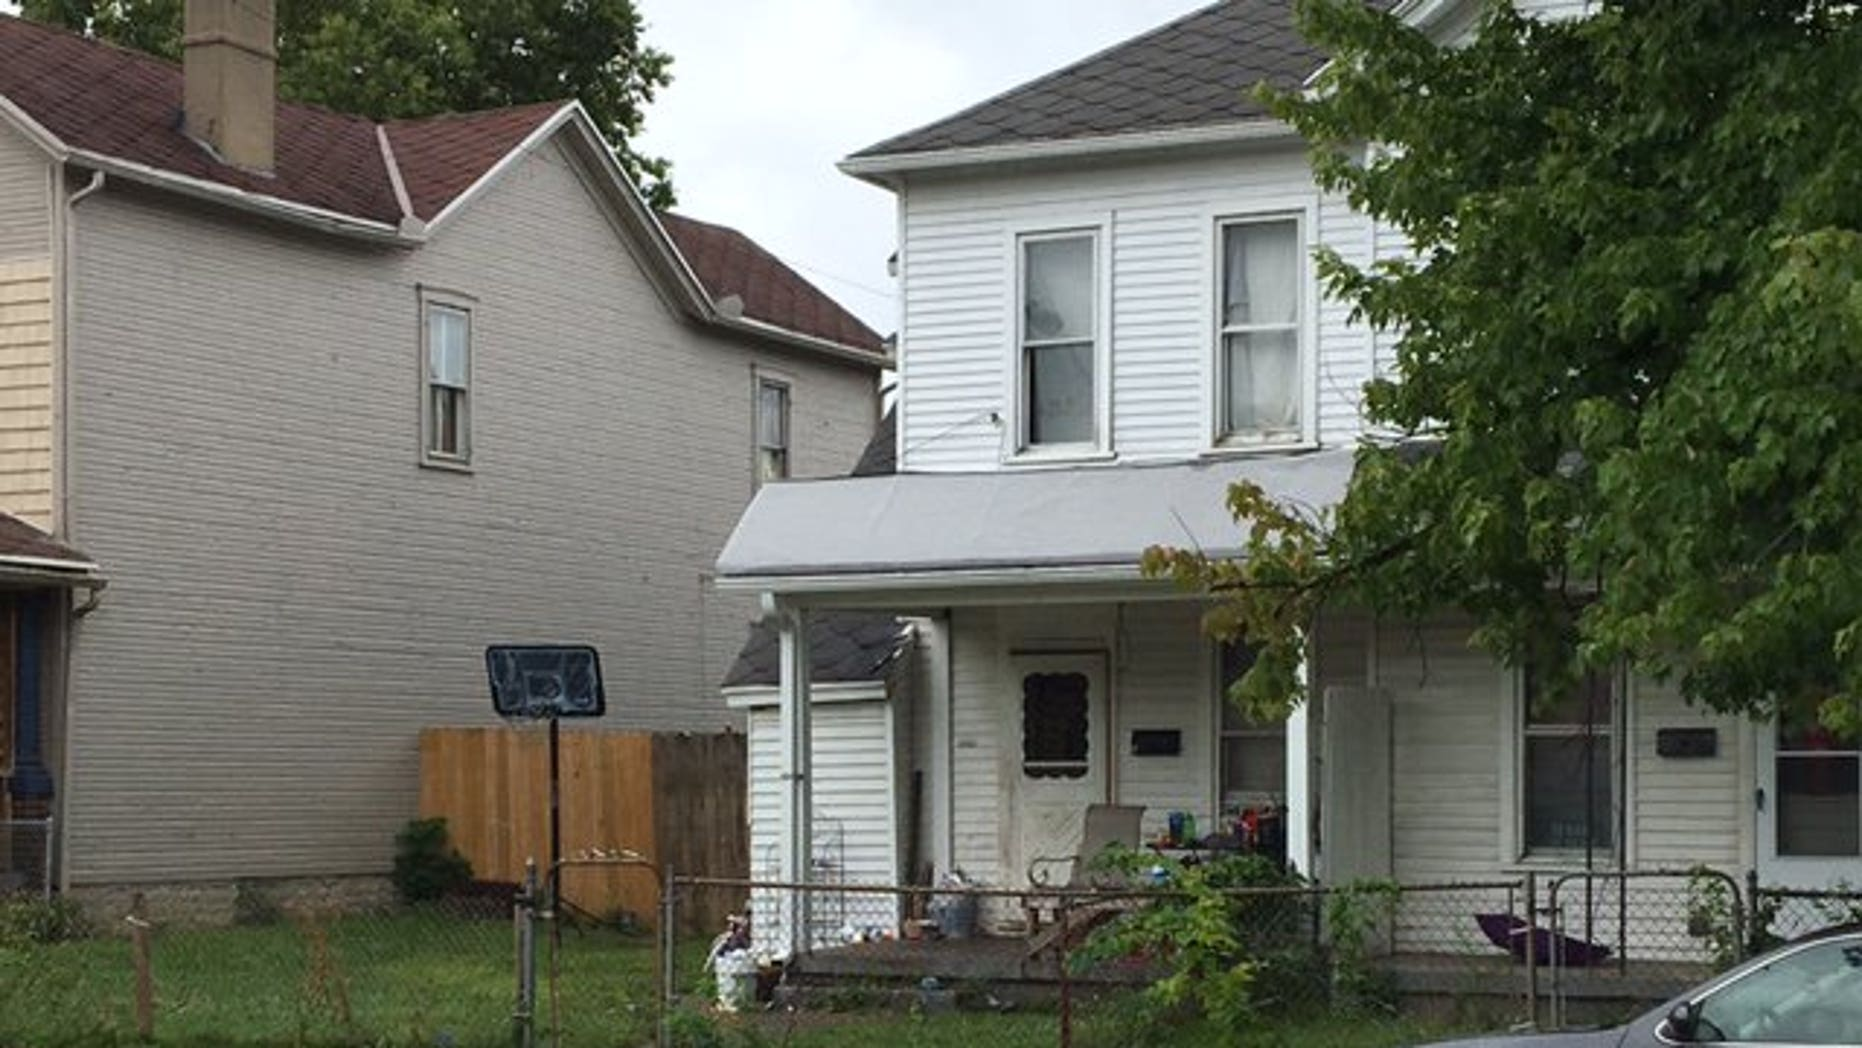 The Dayton home was described by police as 'deplorable.'